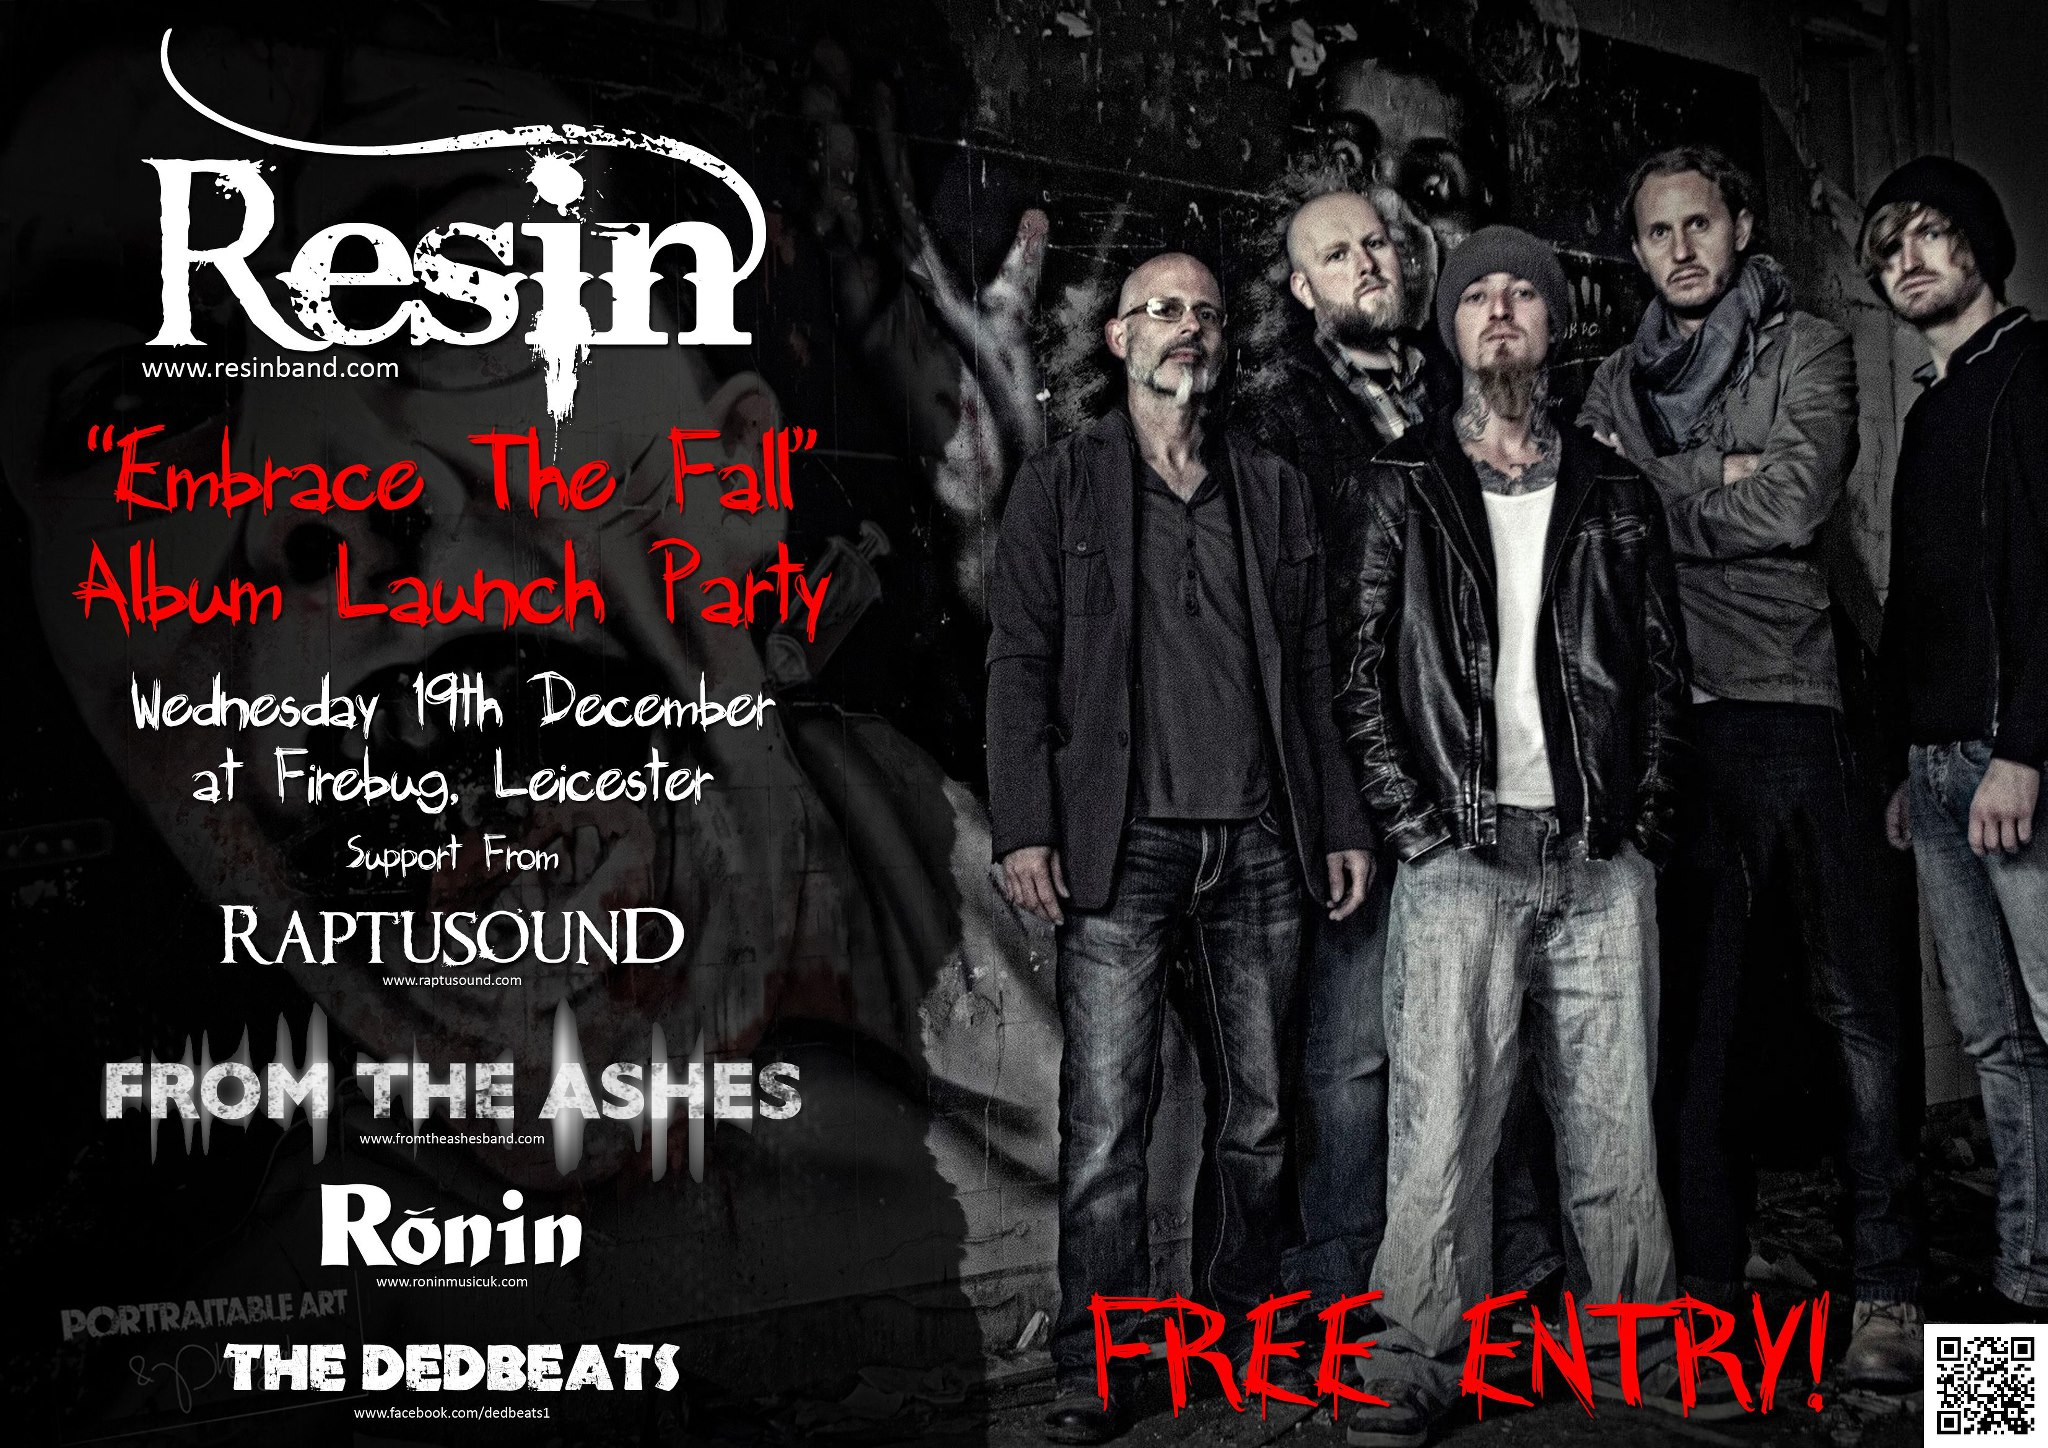 Resin - Embrace The Fall Album Launch Party